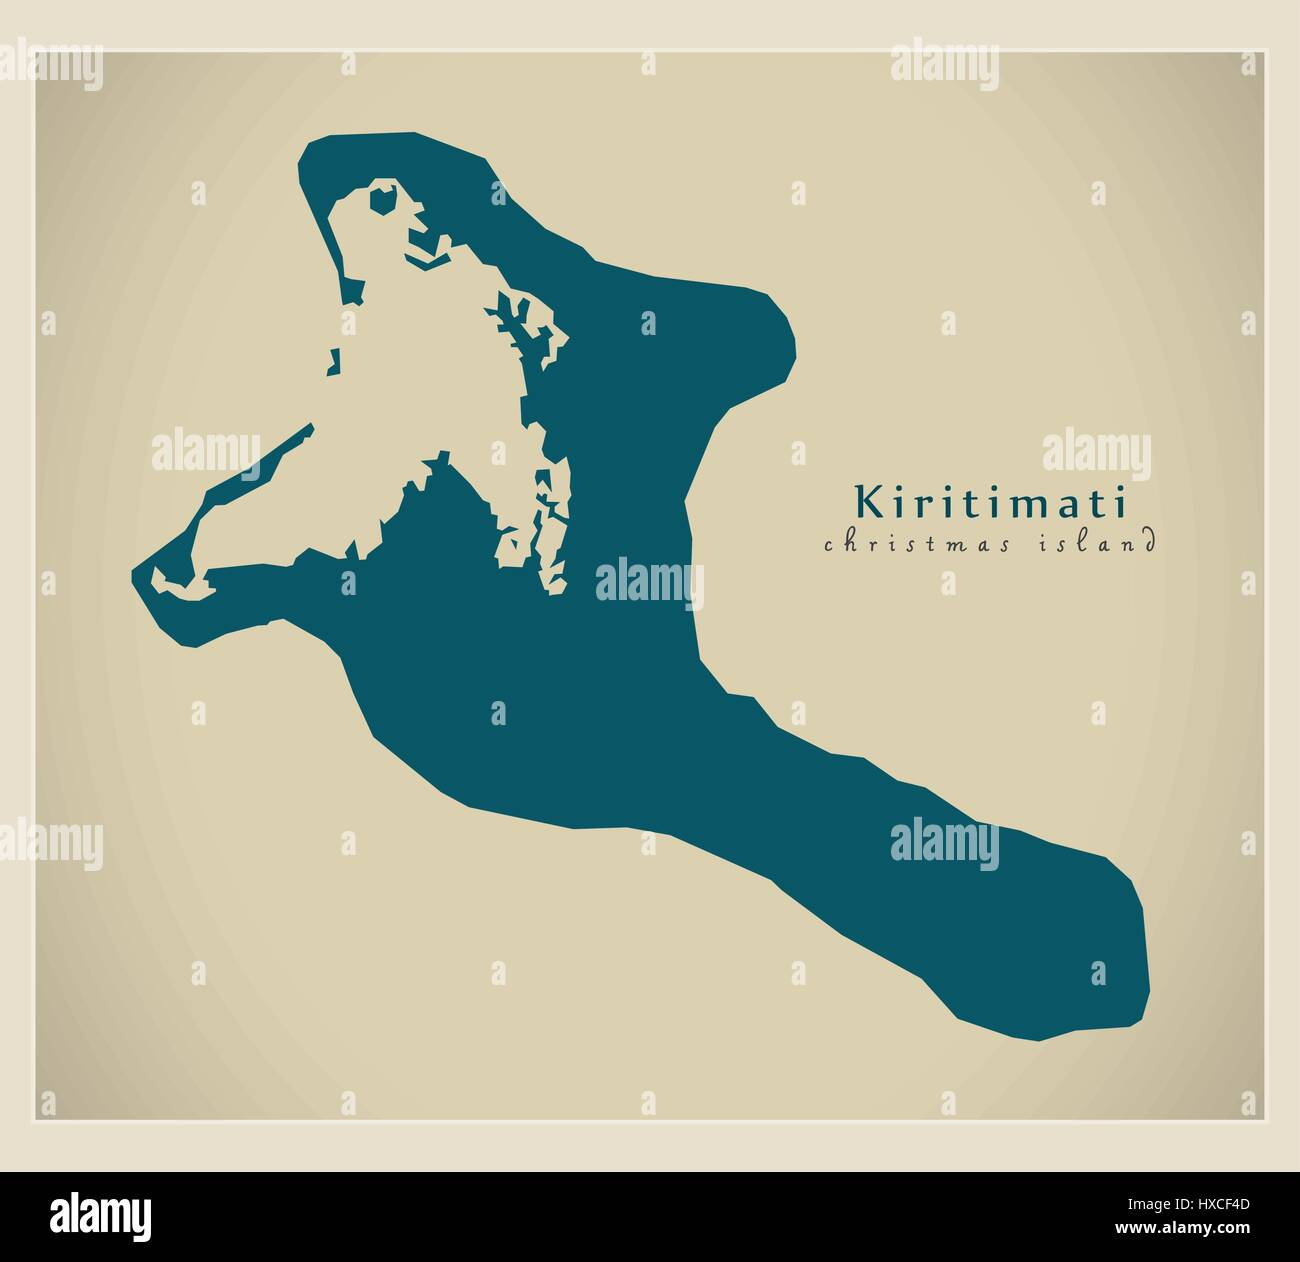 Modern Map - Kiritimati Christmas Island Stock Vector Art ... on pitcairn islands, solomon islands, kauai island outline map, antarctica map, easter island map, pitcairn islands map, usa government map, marshall islands, asia map, fiji map, solomon islands map, cayman islands, northern mariana islands, cocos islands, south georgia and the south sandwich islands, faroe islands, pacific isles map, australia map, mcdonald islands map, islands of kiribati map, indian ocean, new caledonia, pacific ocean map, macau map, united states minor outlying islands map, southeast asia, cook islands, turks and caicos islands, maldives map, galápagos islands map, nauru map, sunset island ocean city maryland map, norfolk island, pacific islands map,